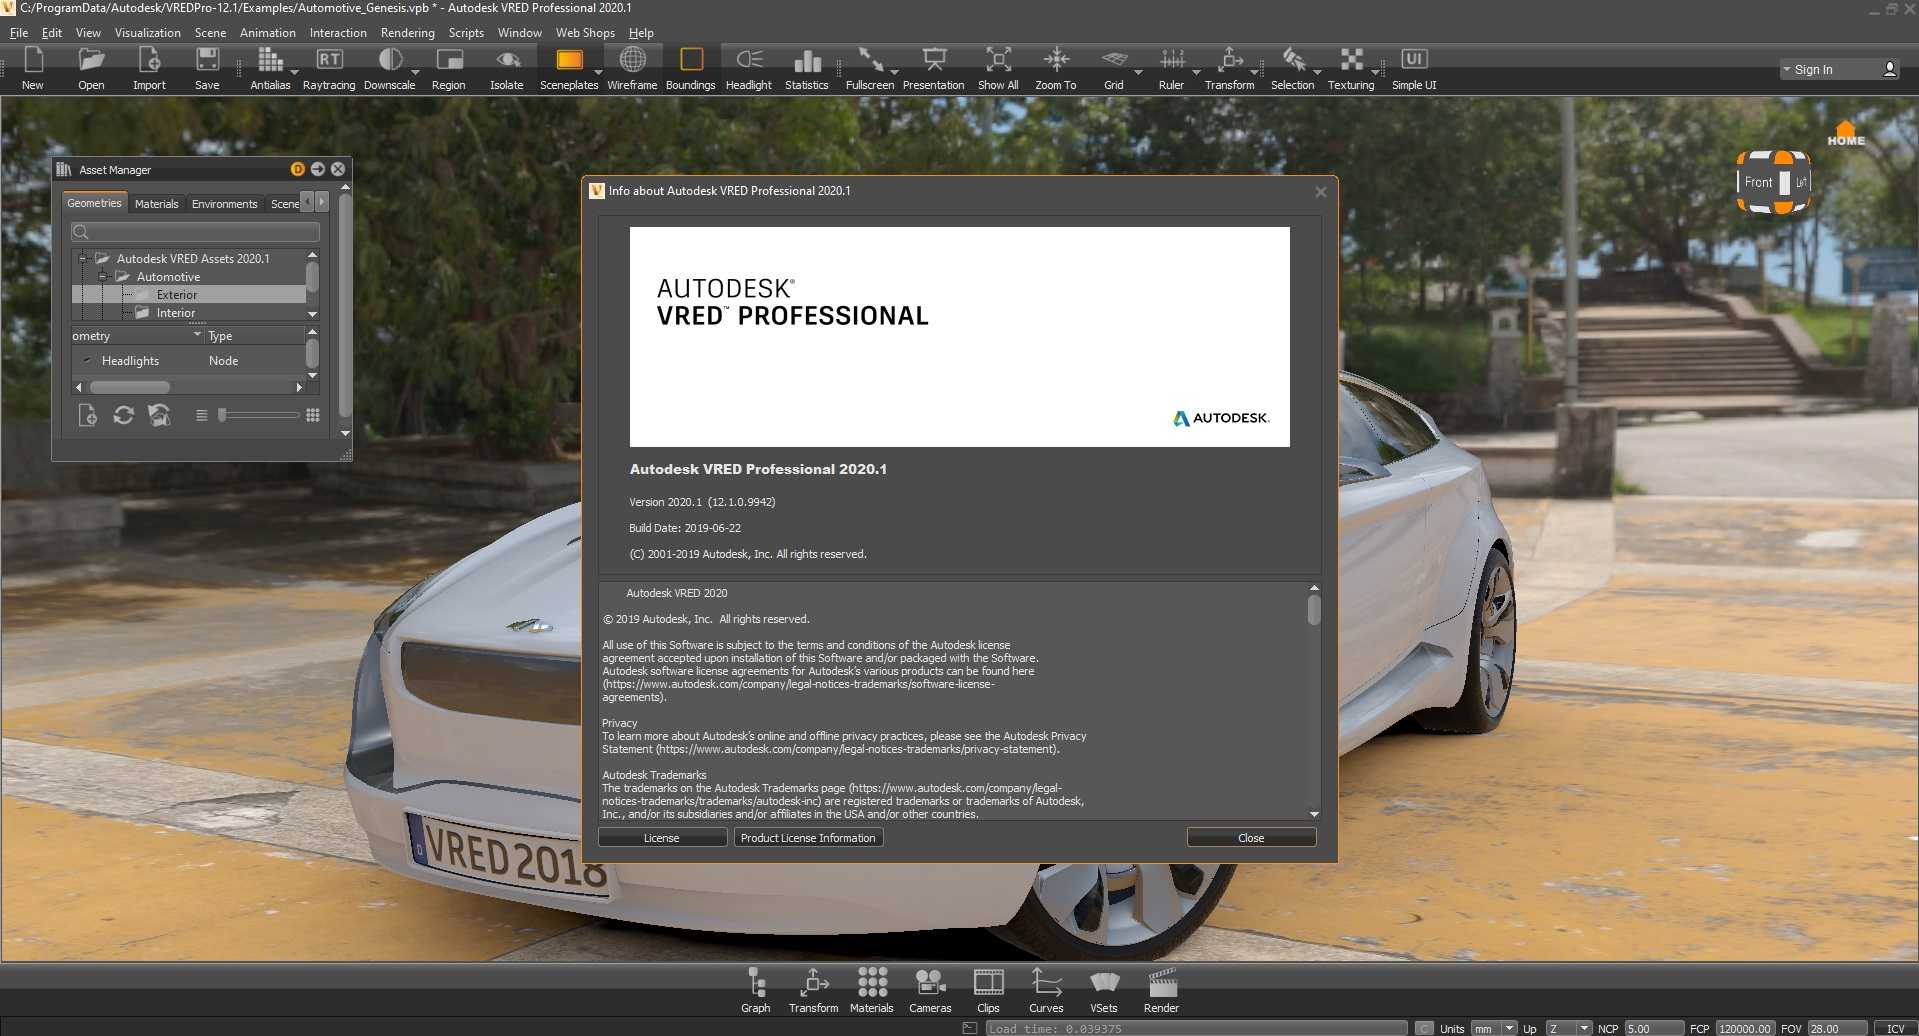 Working with Autodesk VRED Professional 2020.1 x64 full license